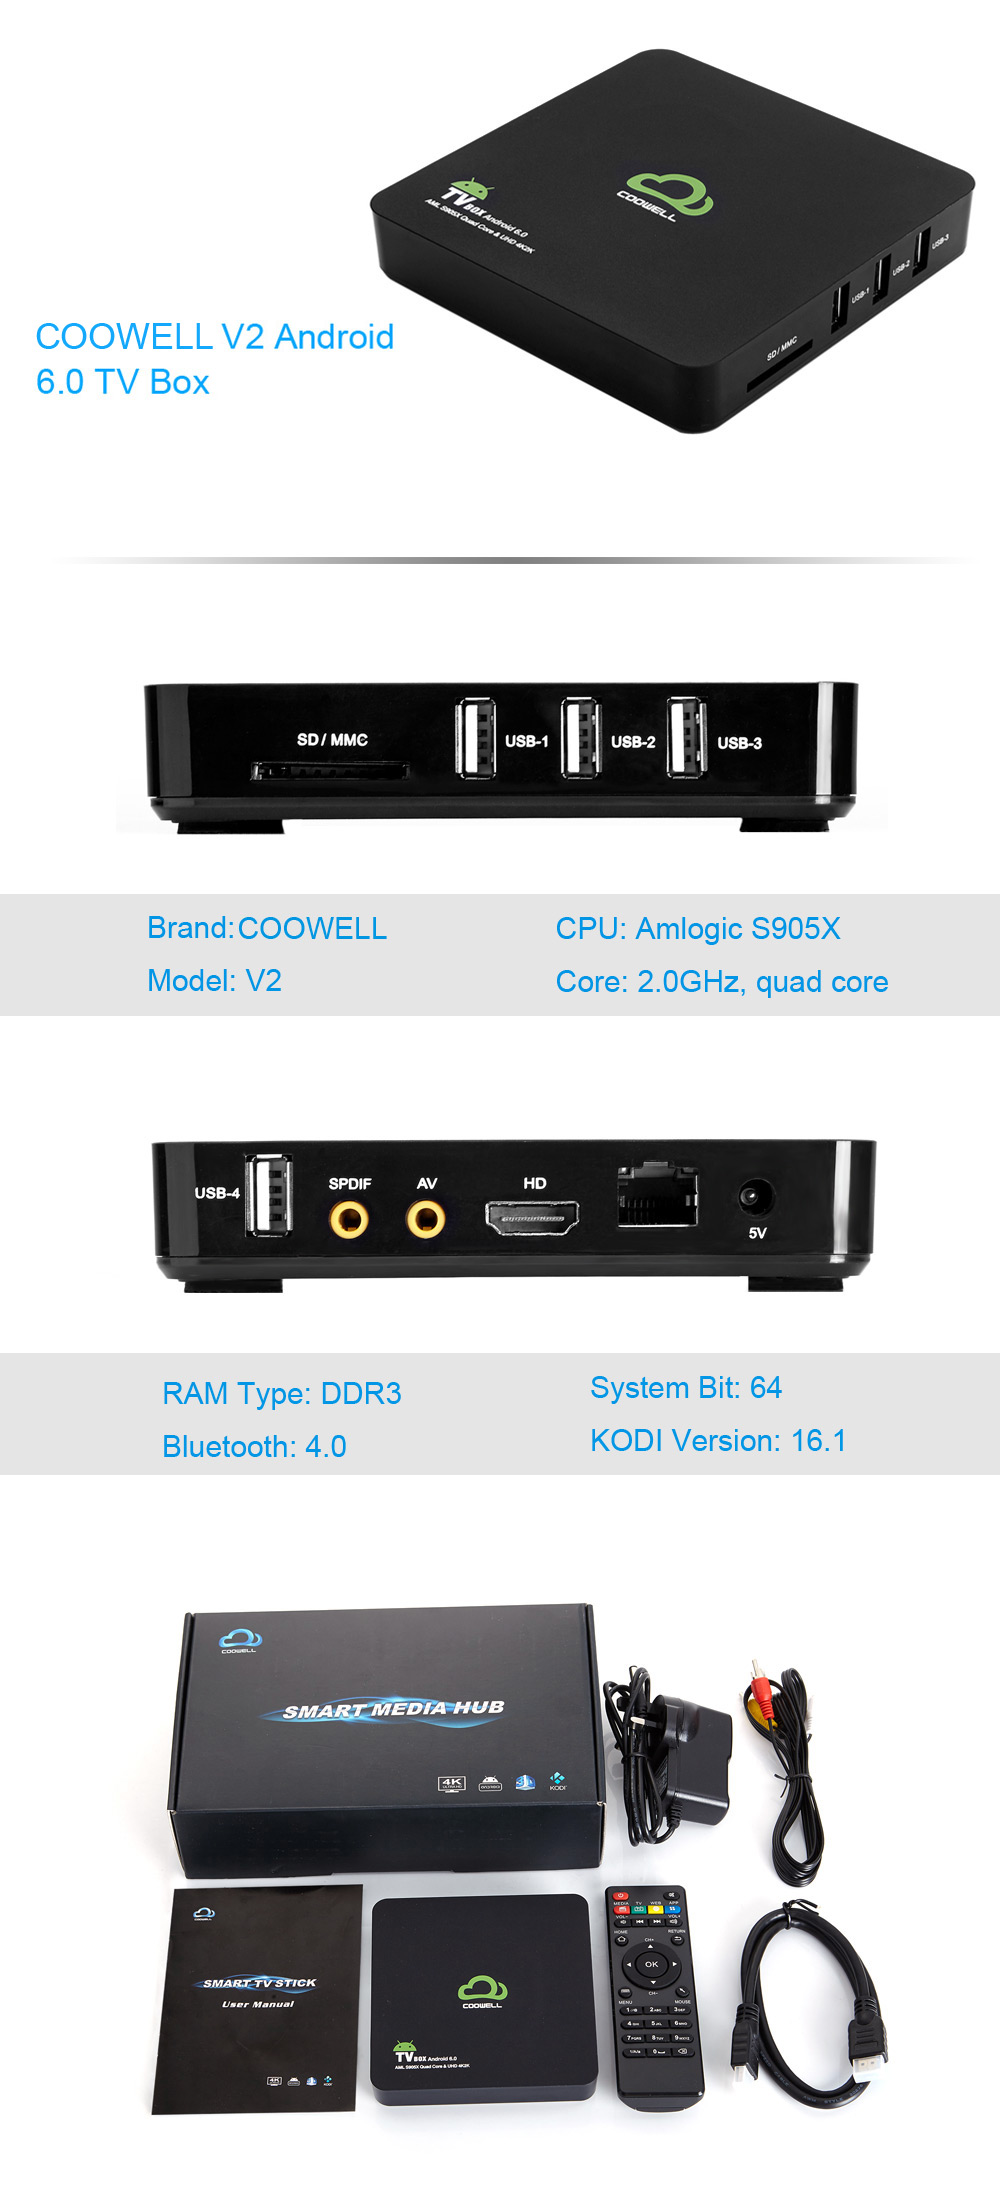 COOWELL V2 Android 6.0 TV Box with Amlogic S905X Quad-core CPU Supporting Bluetooth 4.0 Dual Band WiFi